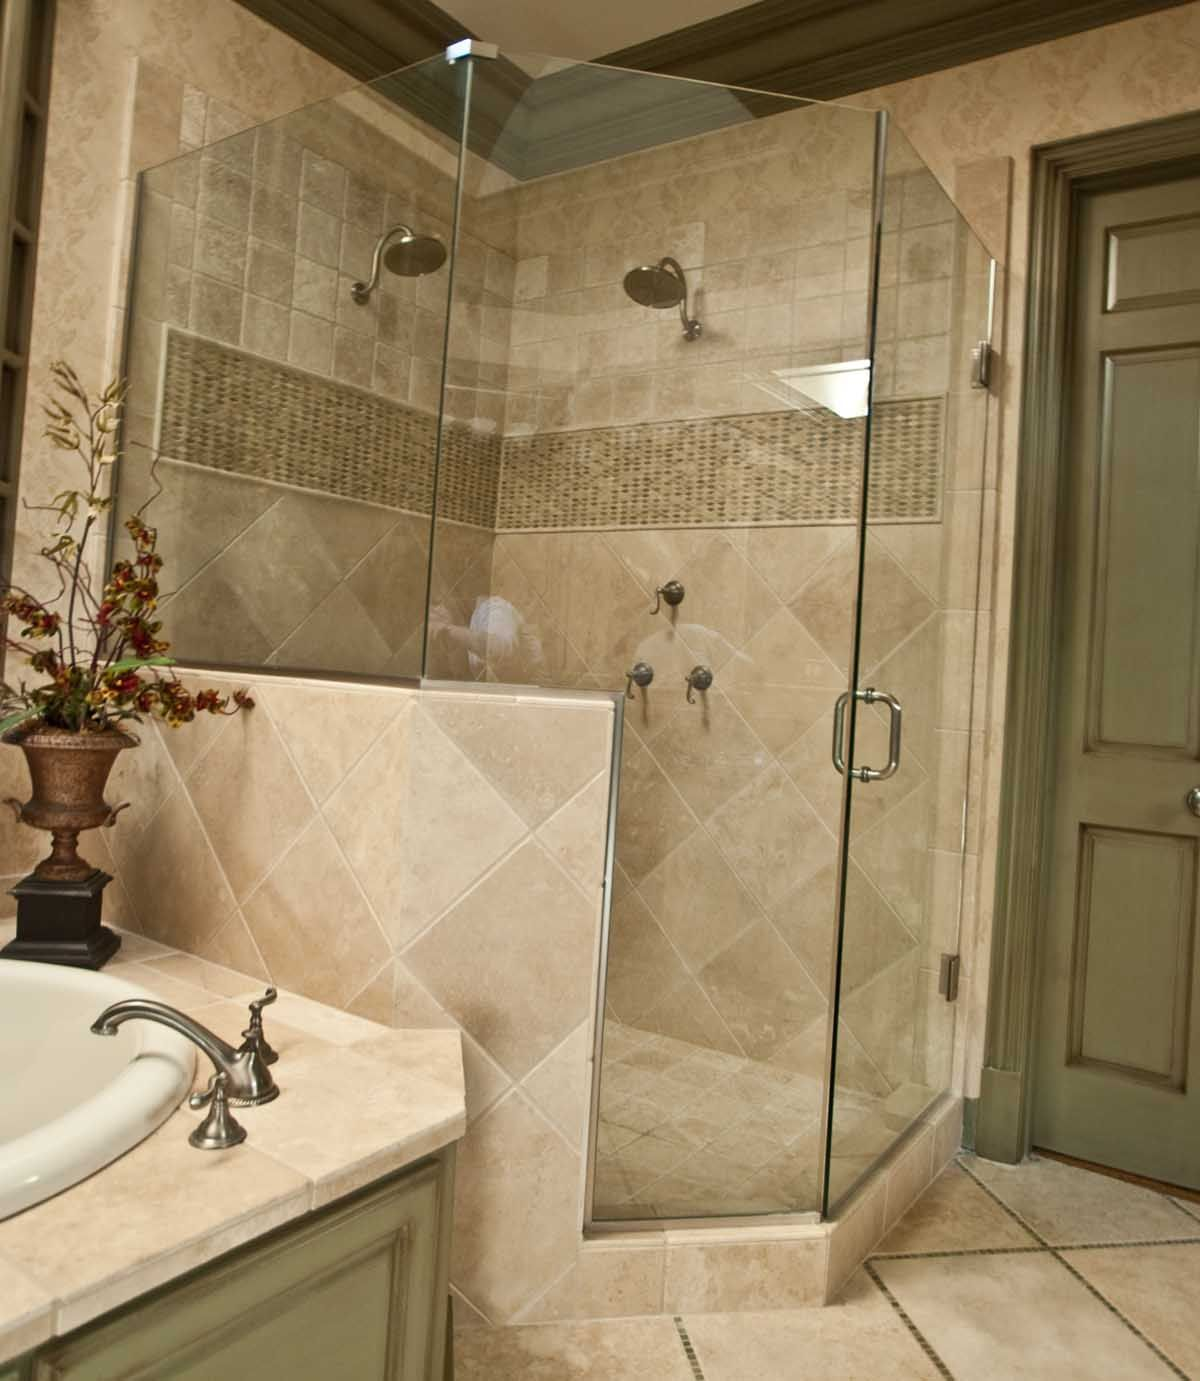 Photo Album For Website bathroom remodeling ideas Bathroom Remodeling Ideas For Small Bathrooms From Firmones Styles